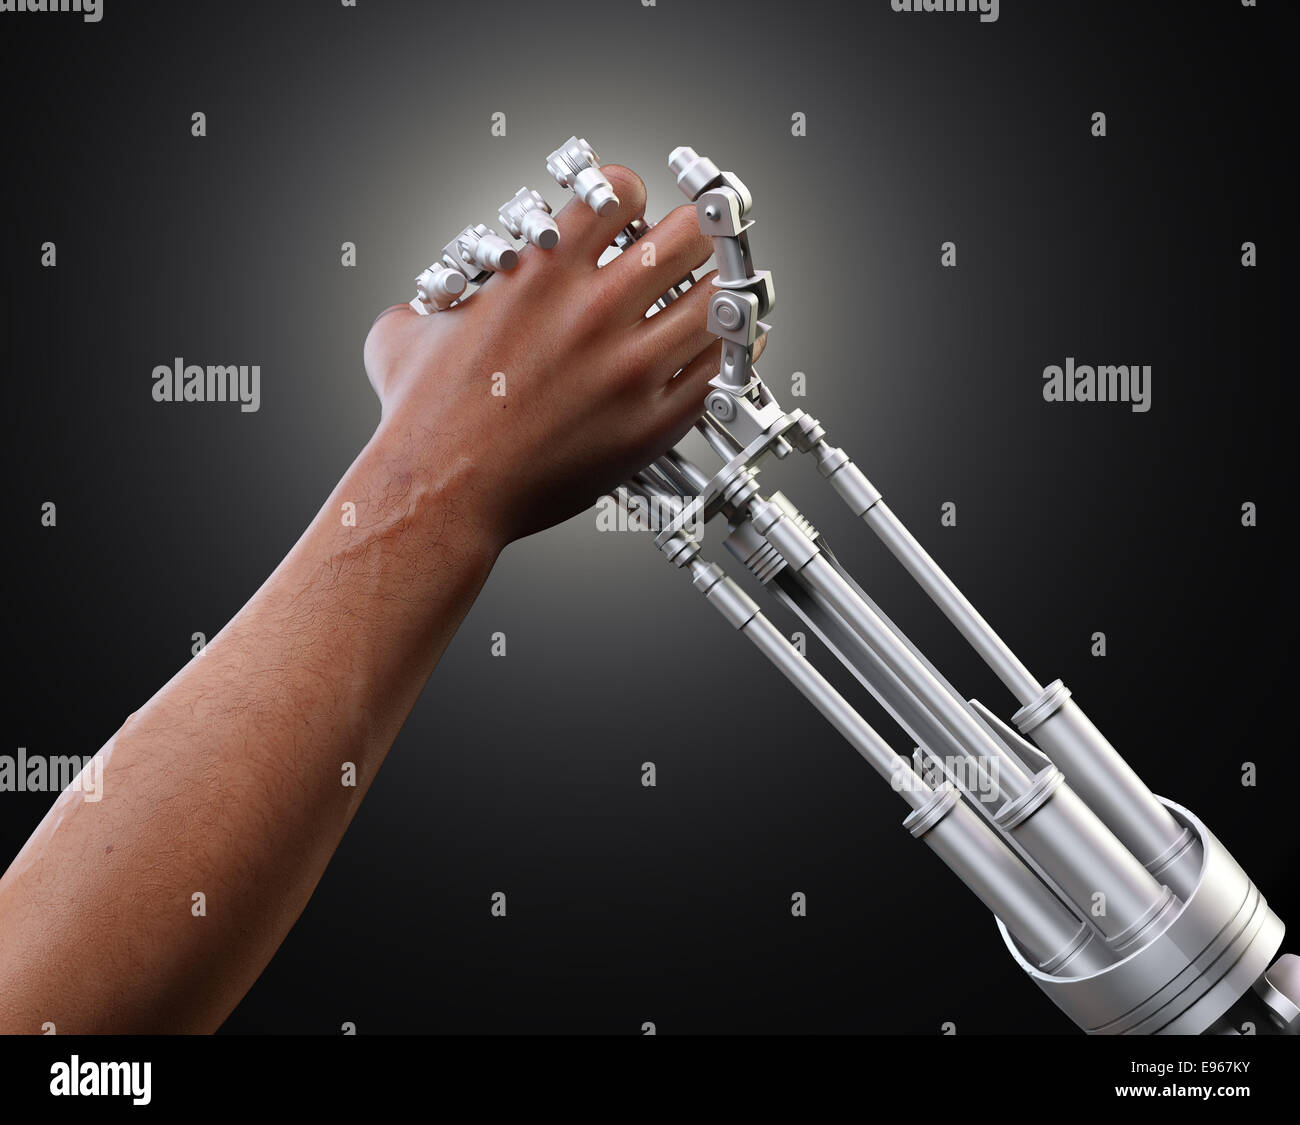 Man and a robot holding hands or arm wrestling - machine vs human - Stock Image